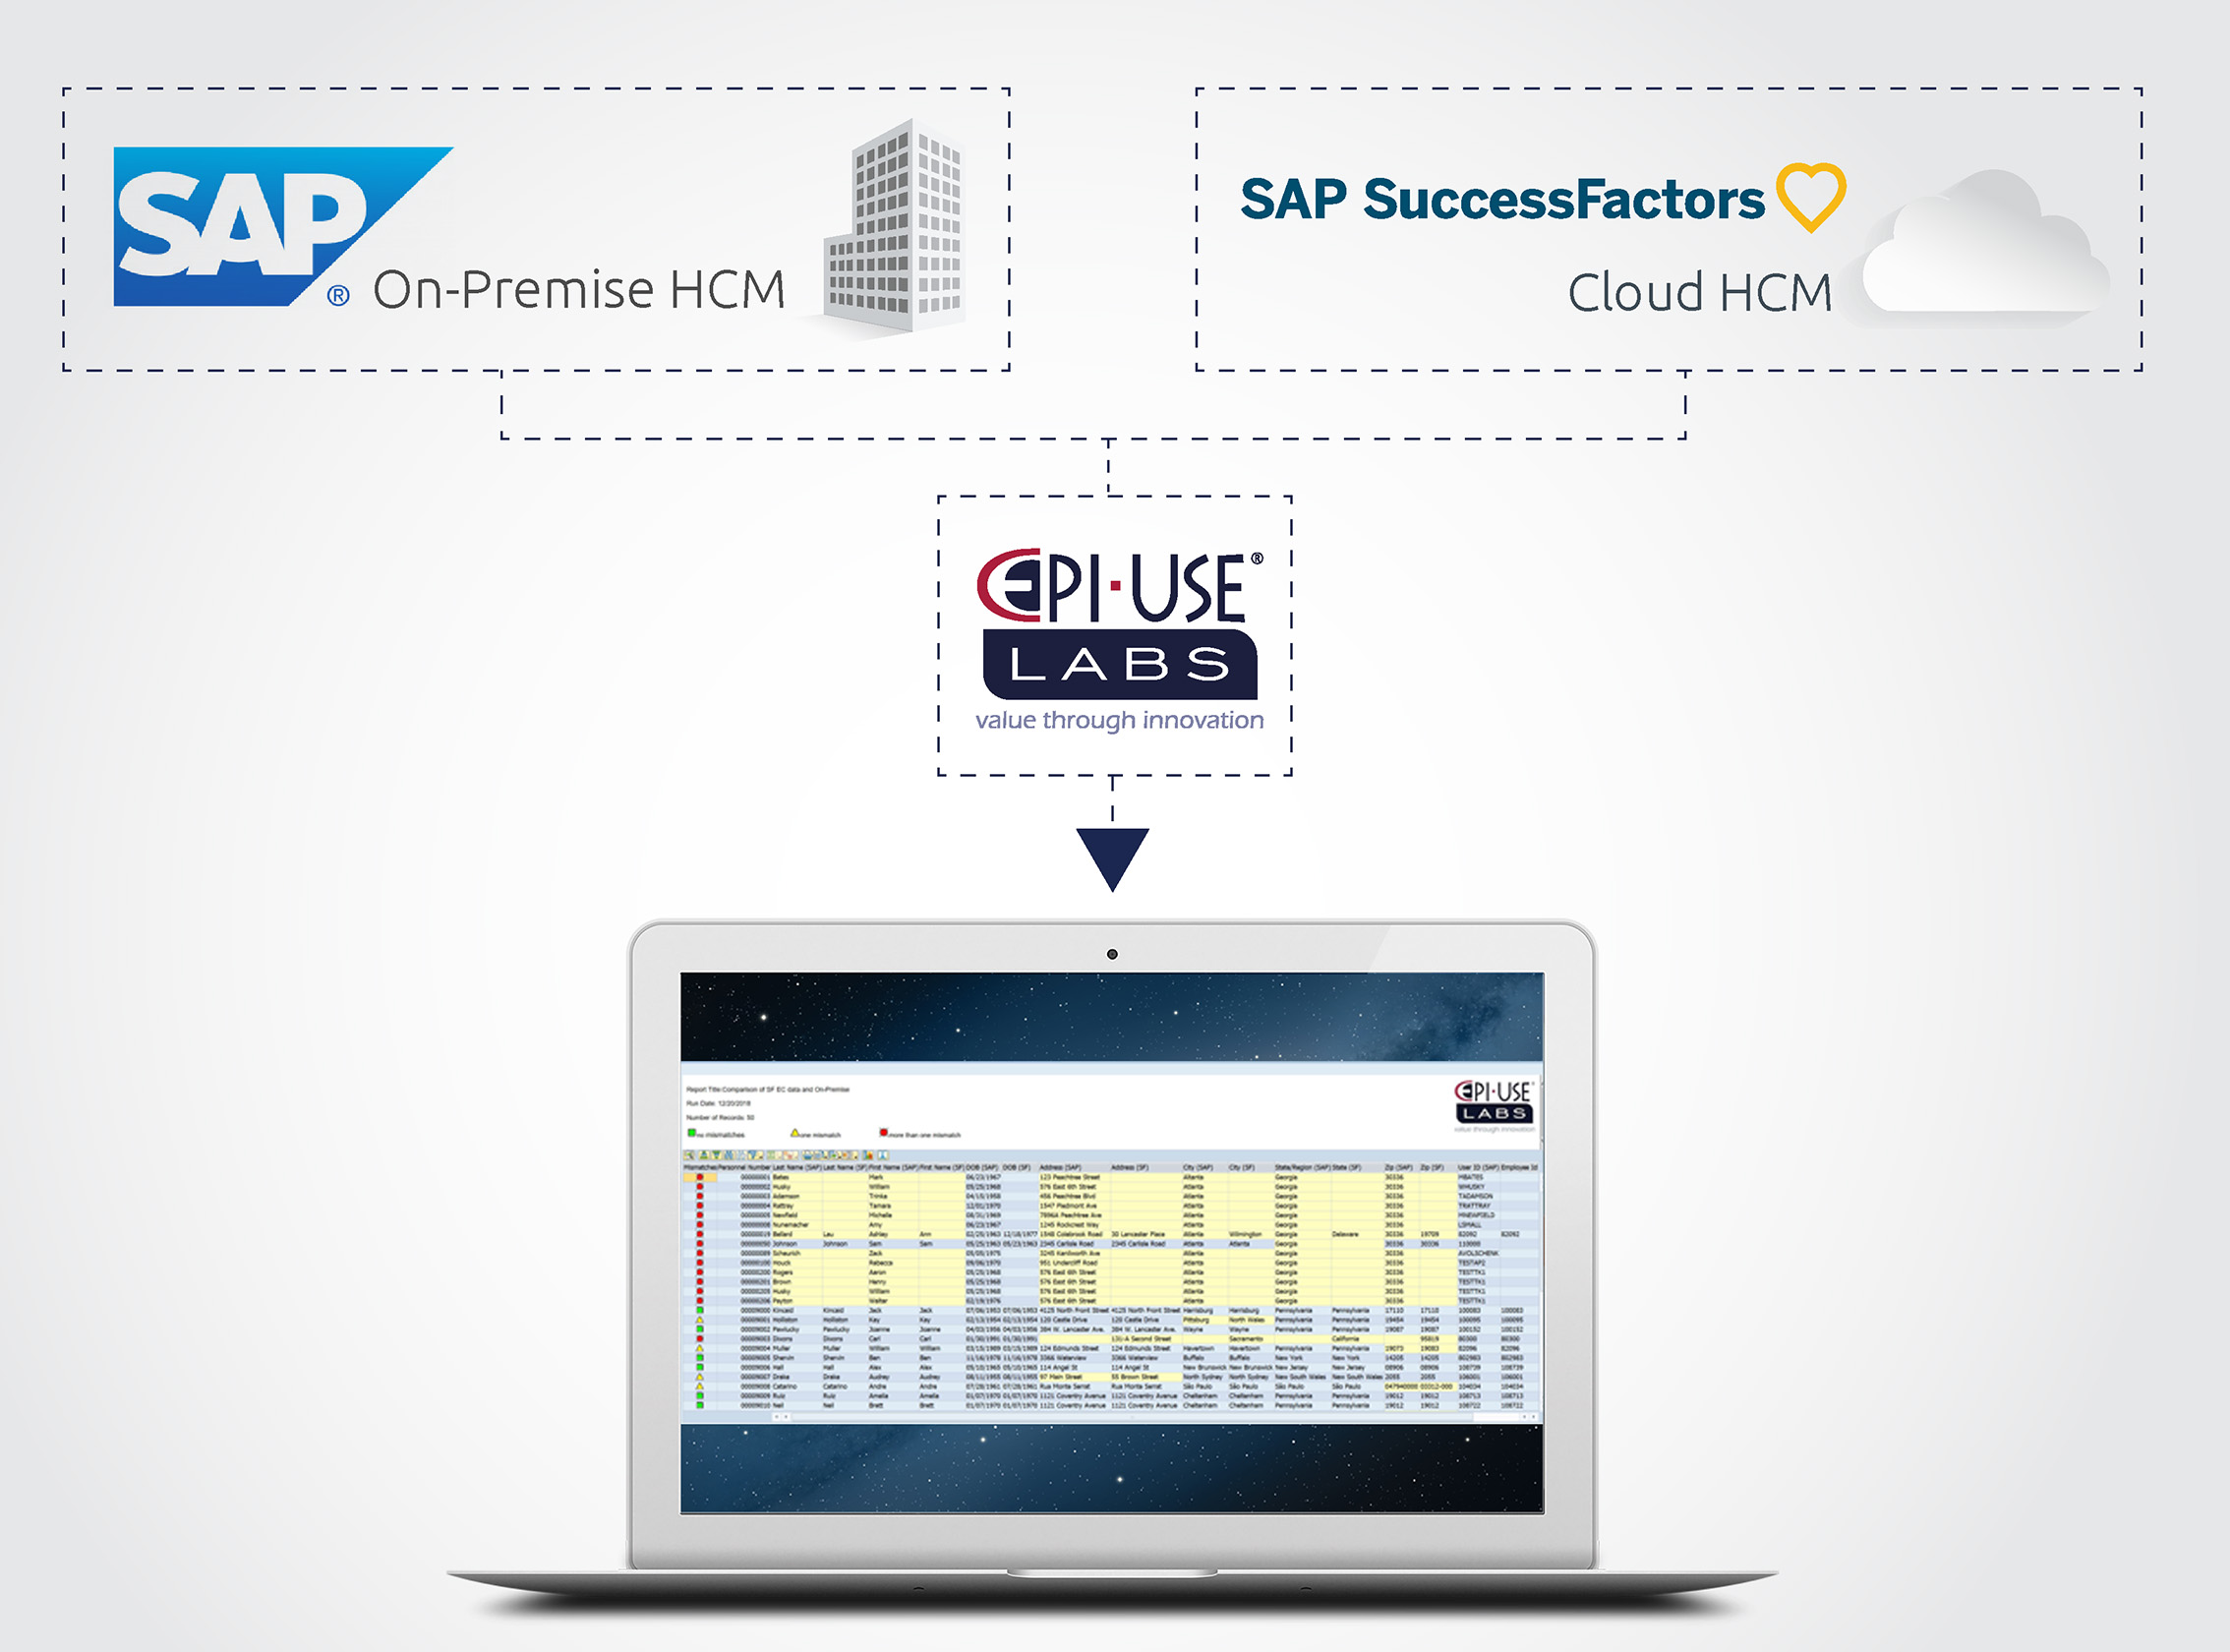 Can you report on data from SAP and SuccessFactors at the same time?